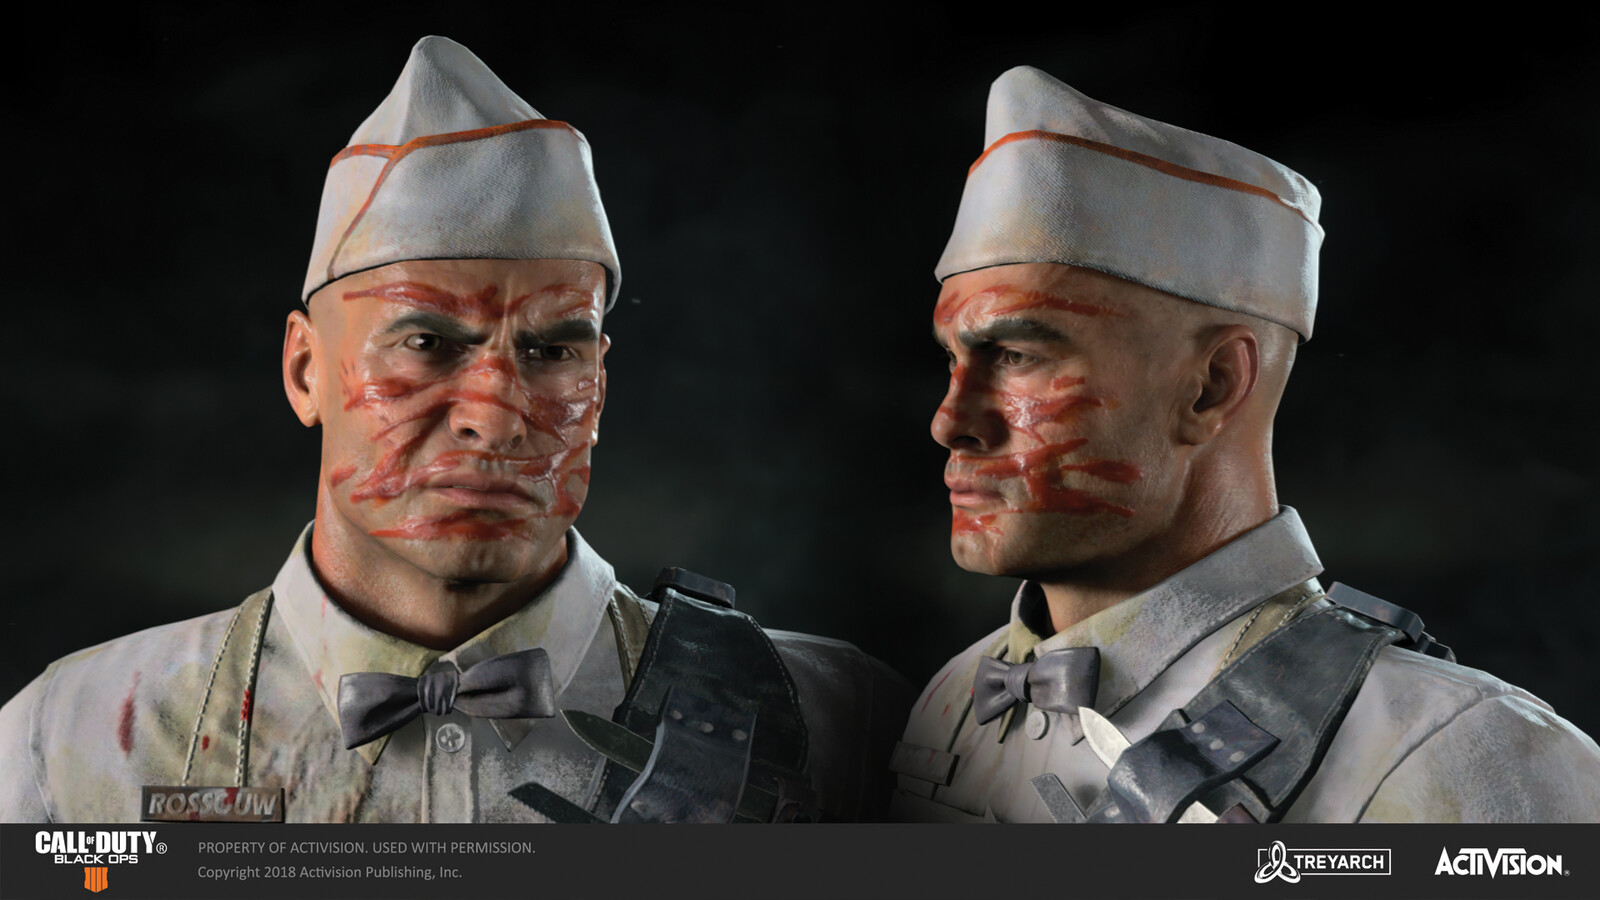 Responsible for texturing Ajax's ketchup tiger stripe warpaint for the 'Chef' skin, released during the Operation Z DLC. The body model was made by our external partners at Virtuos. The challenge in making the paint look like real ketchup was pretty fun!